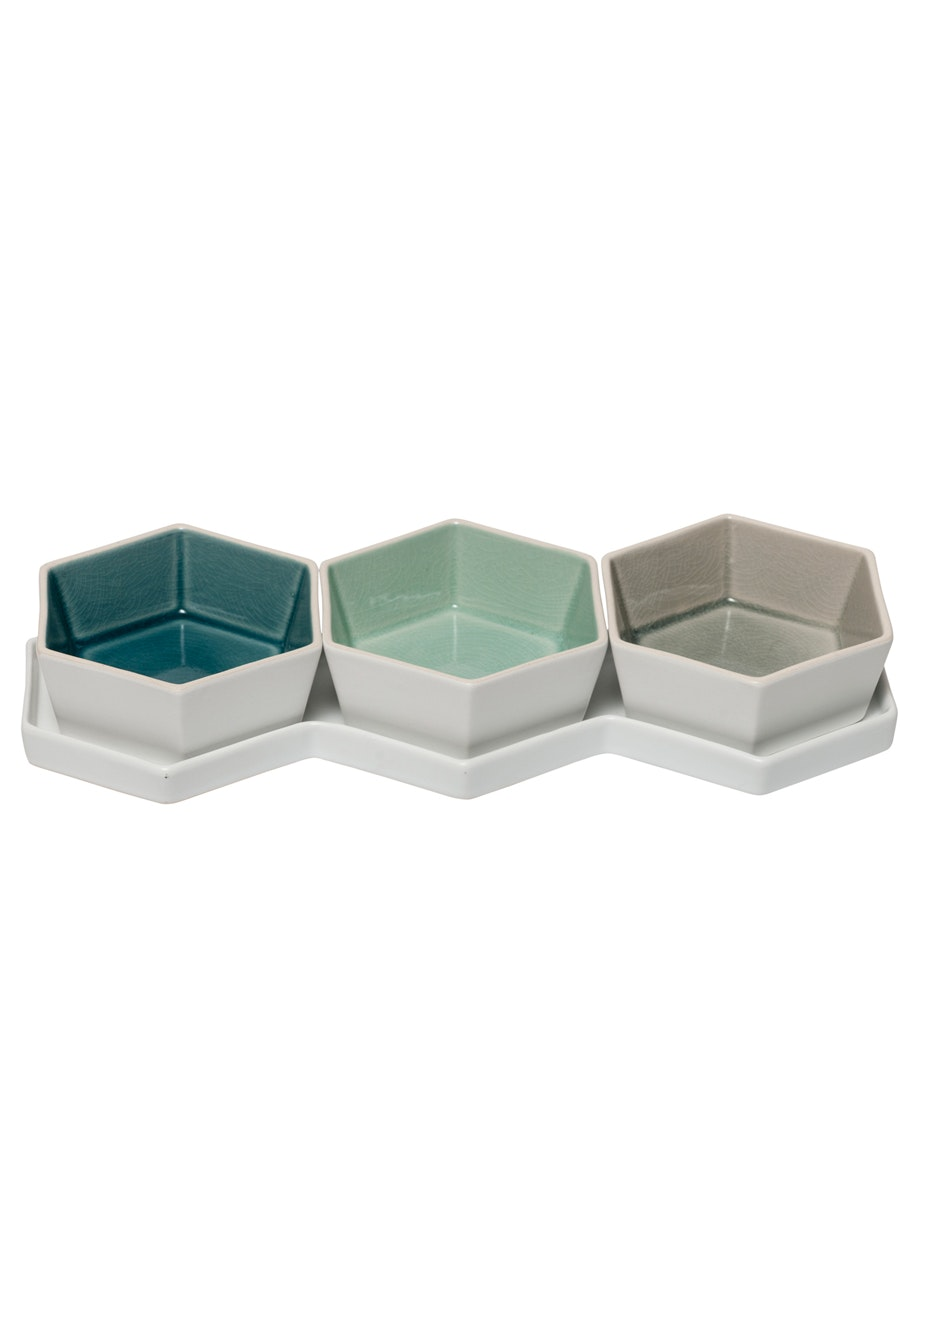 General Eclectic - Hexagon Dip Bowl Set